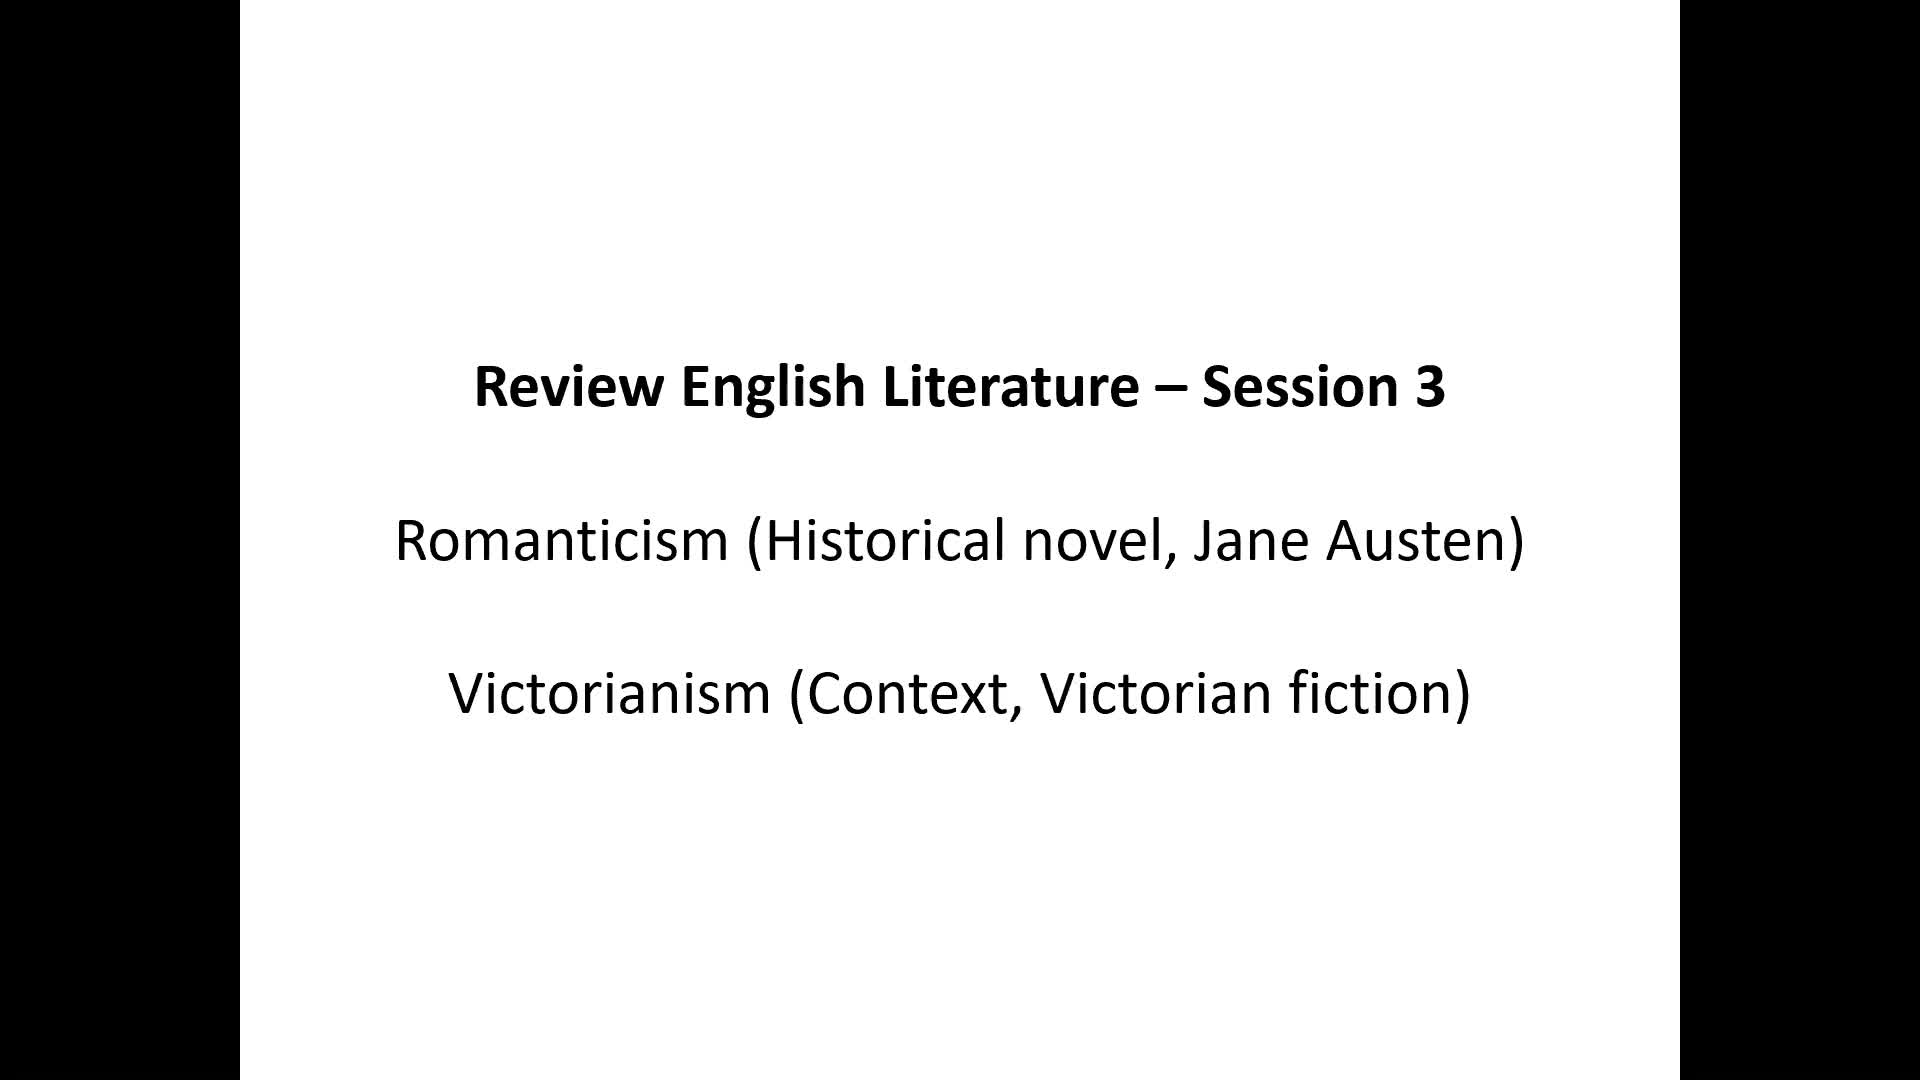 Review English Literature, Session 3